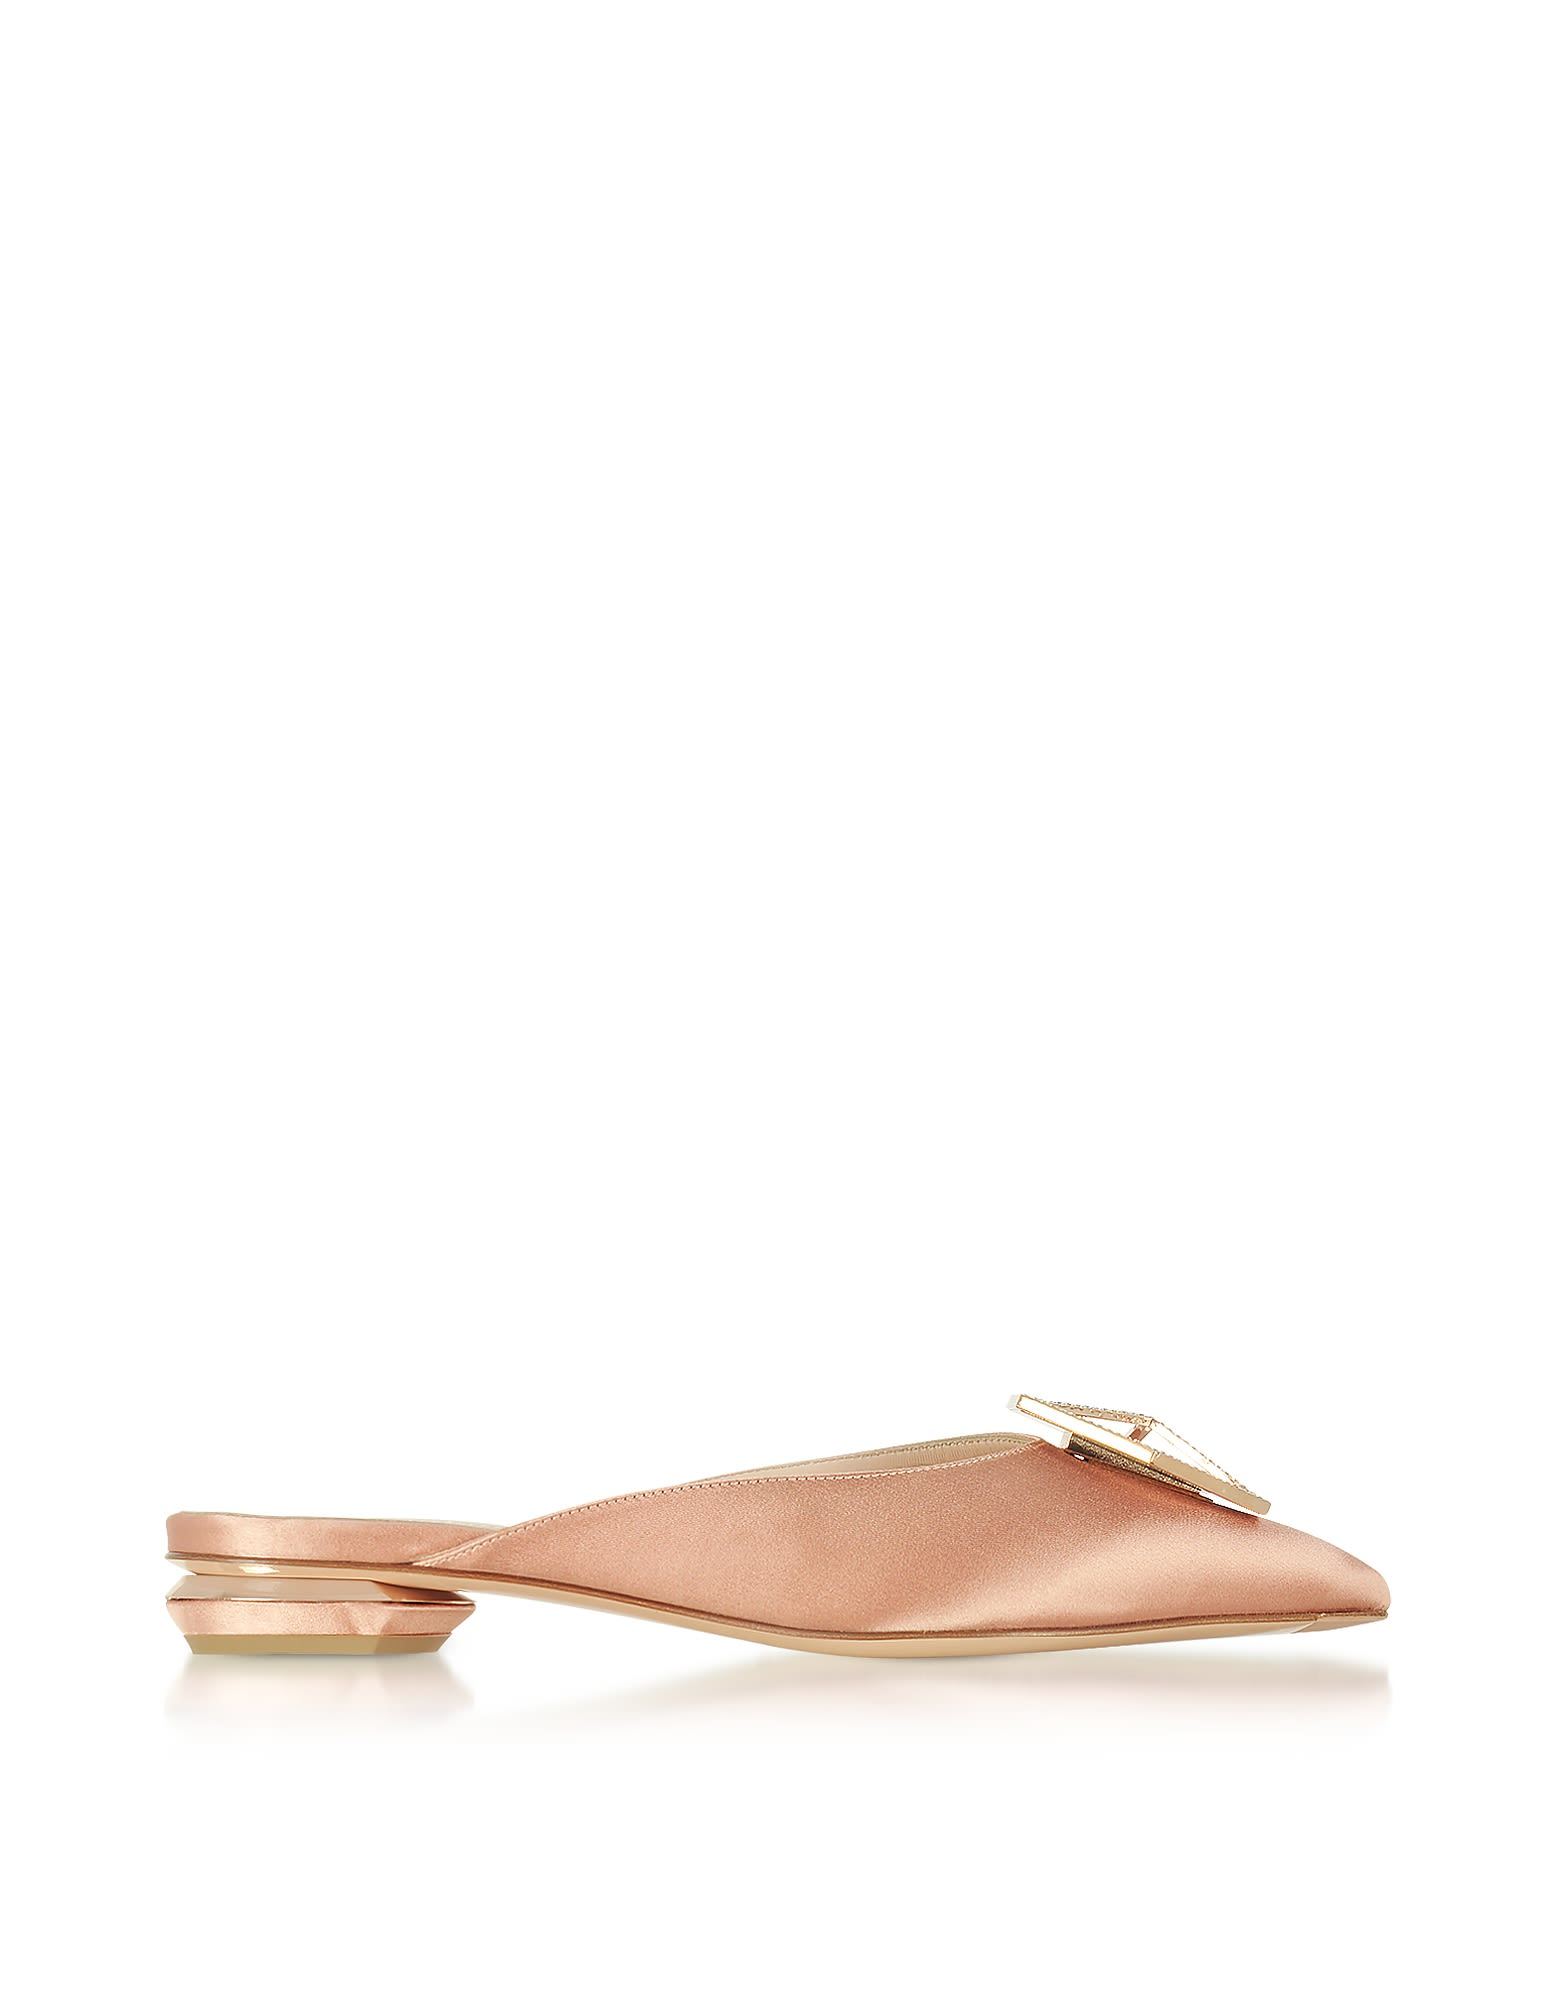 Nicholas Kirkwood Designer Shoes, Eden Clay Satin Jewel Mule